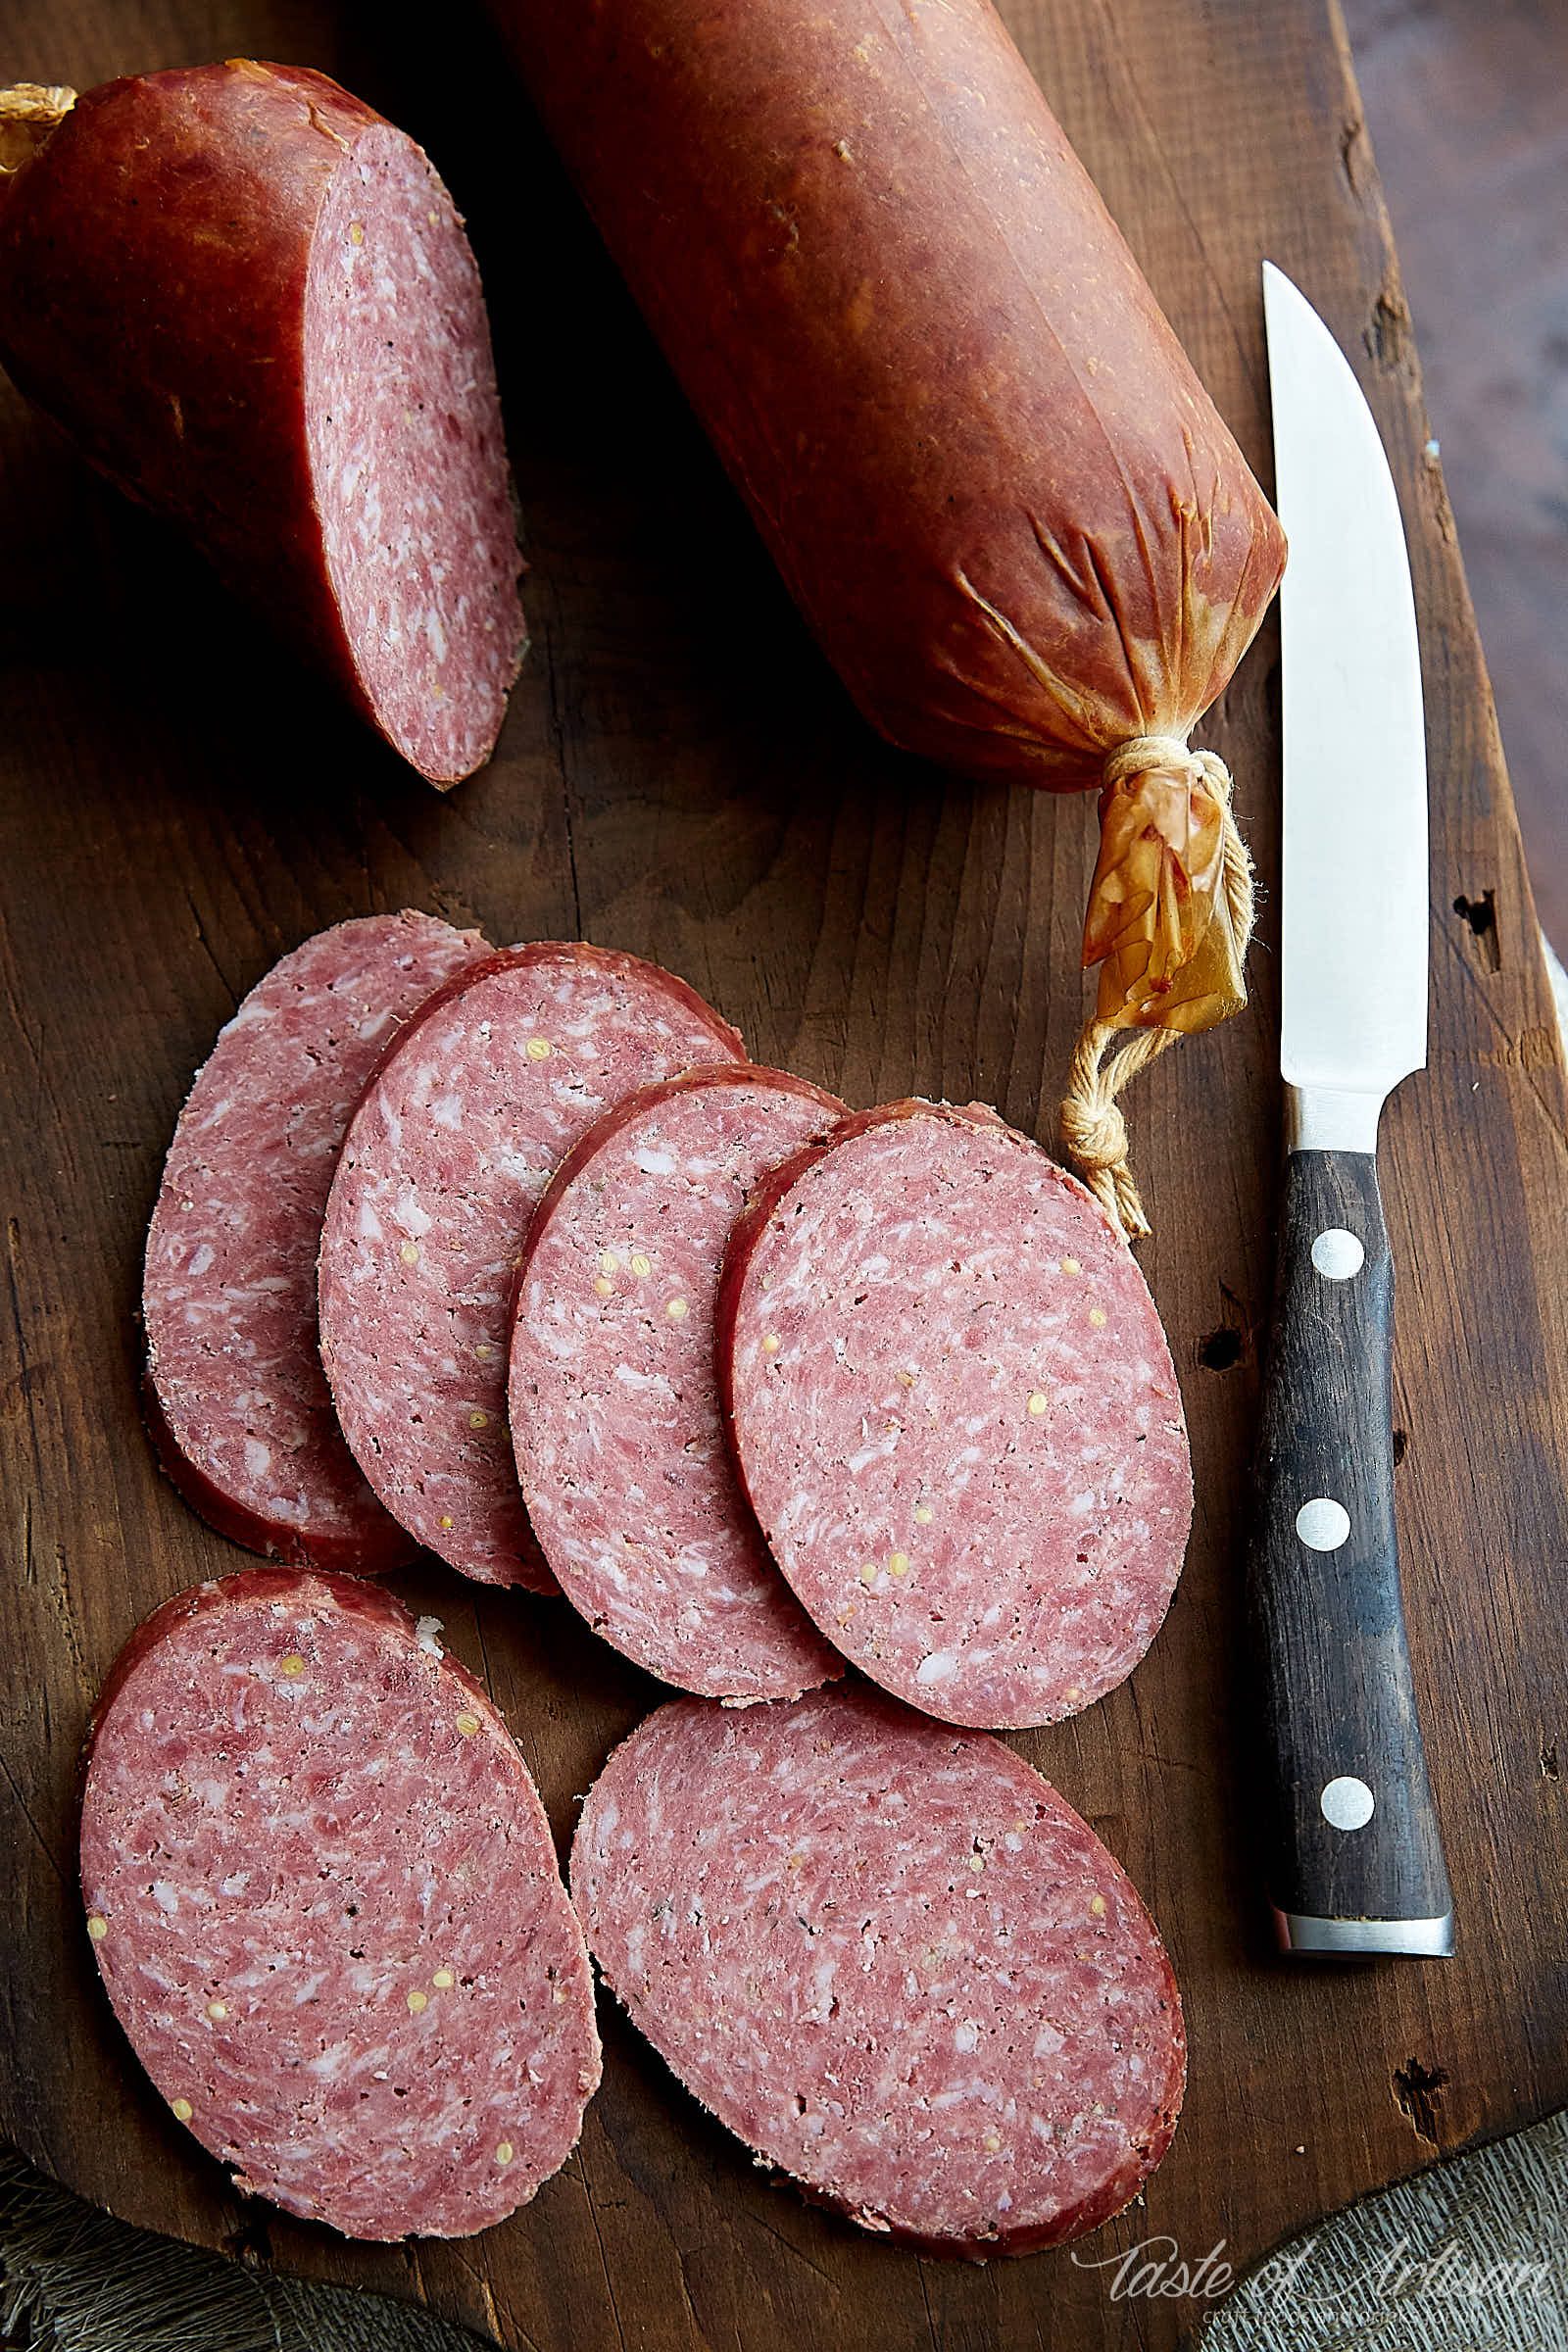 How to Make Summer Sausage - Taste of